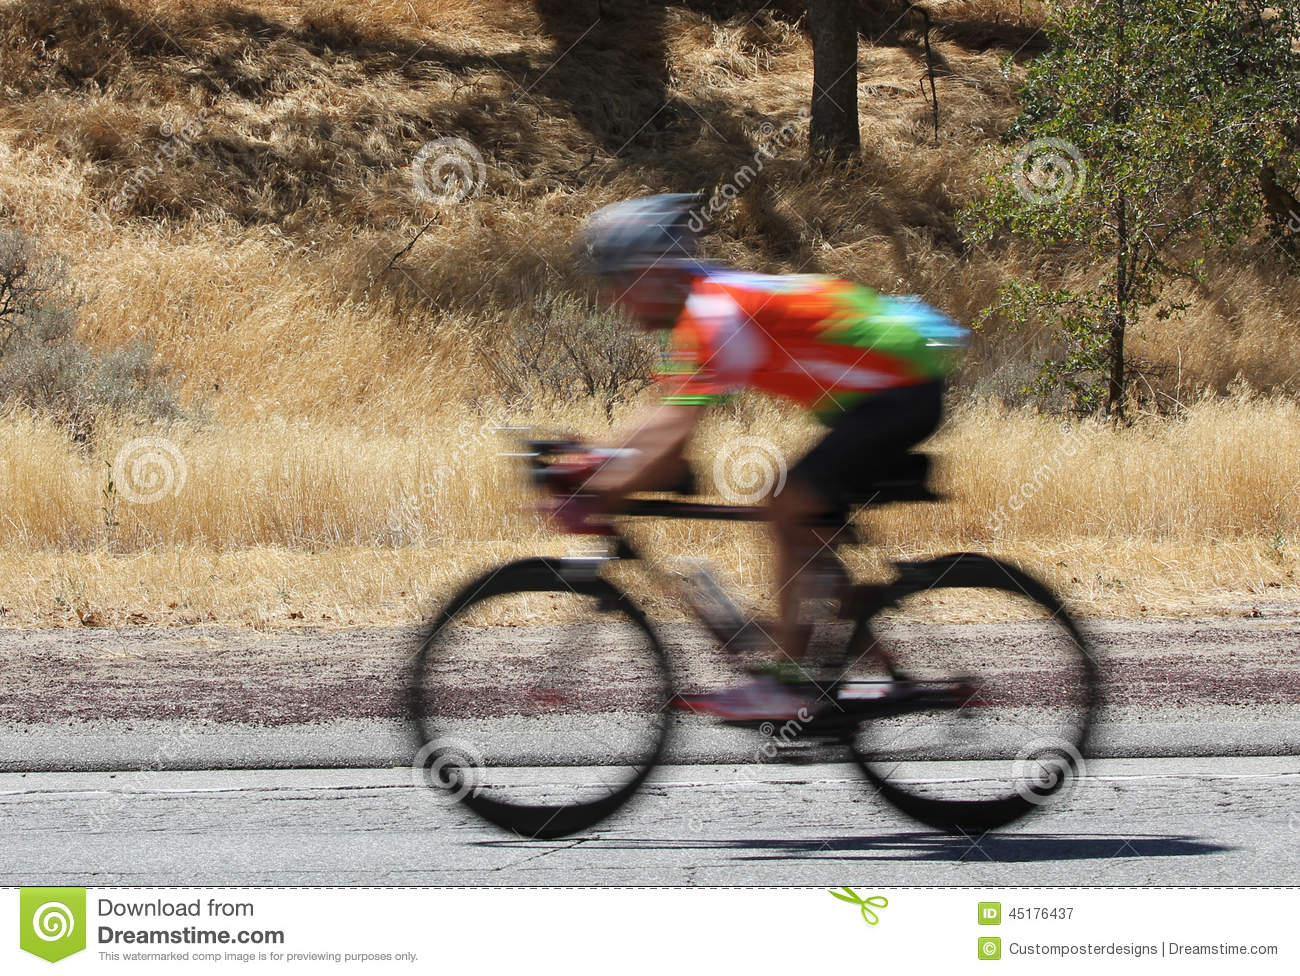 Download A Blurred Image Of A Speeding Bike Rider. Stock Image - Image of cyclist, fitness: 45176437